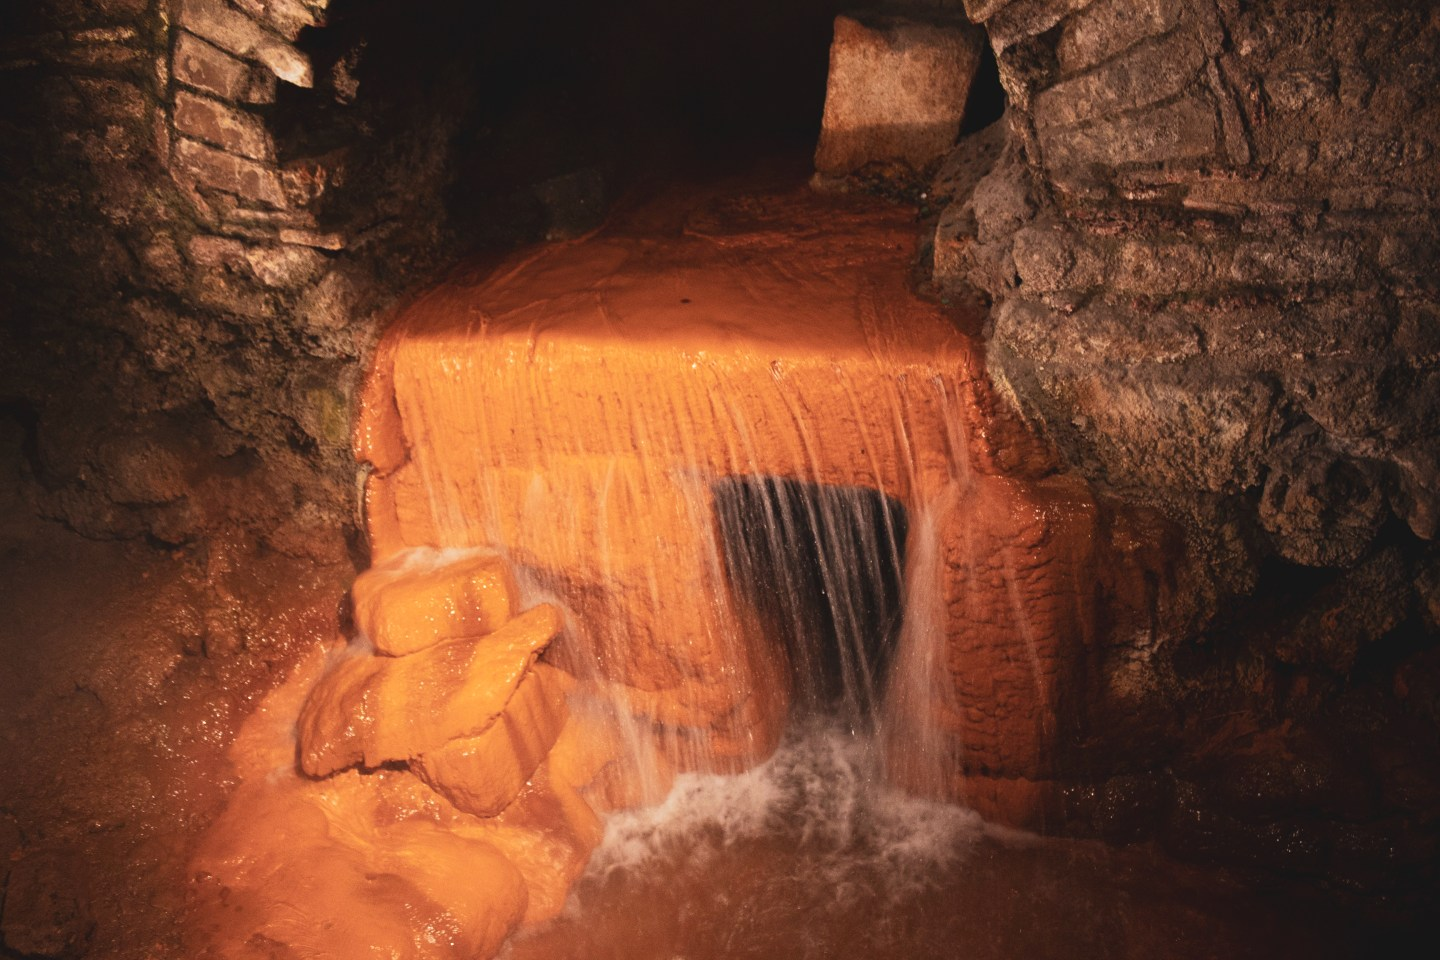 Water gushes from a tunnel with steam rising from it